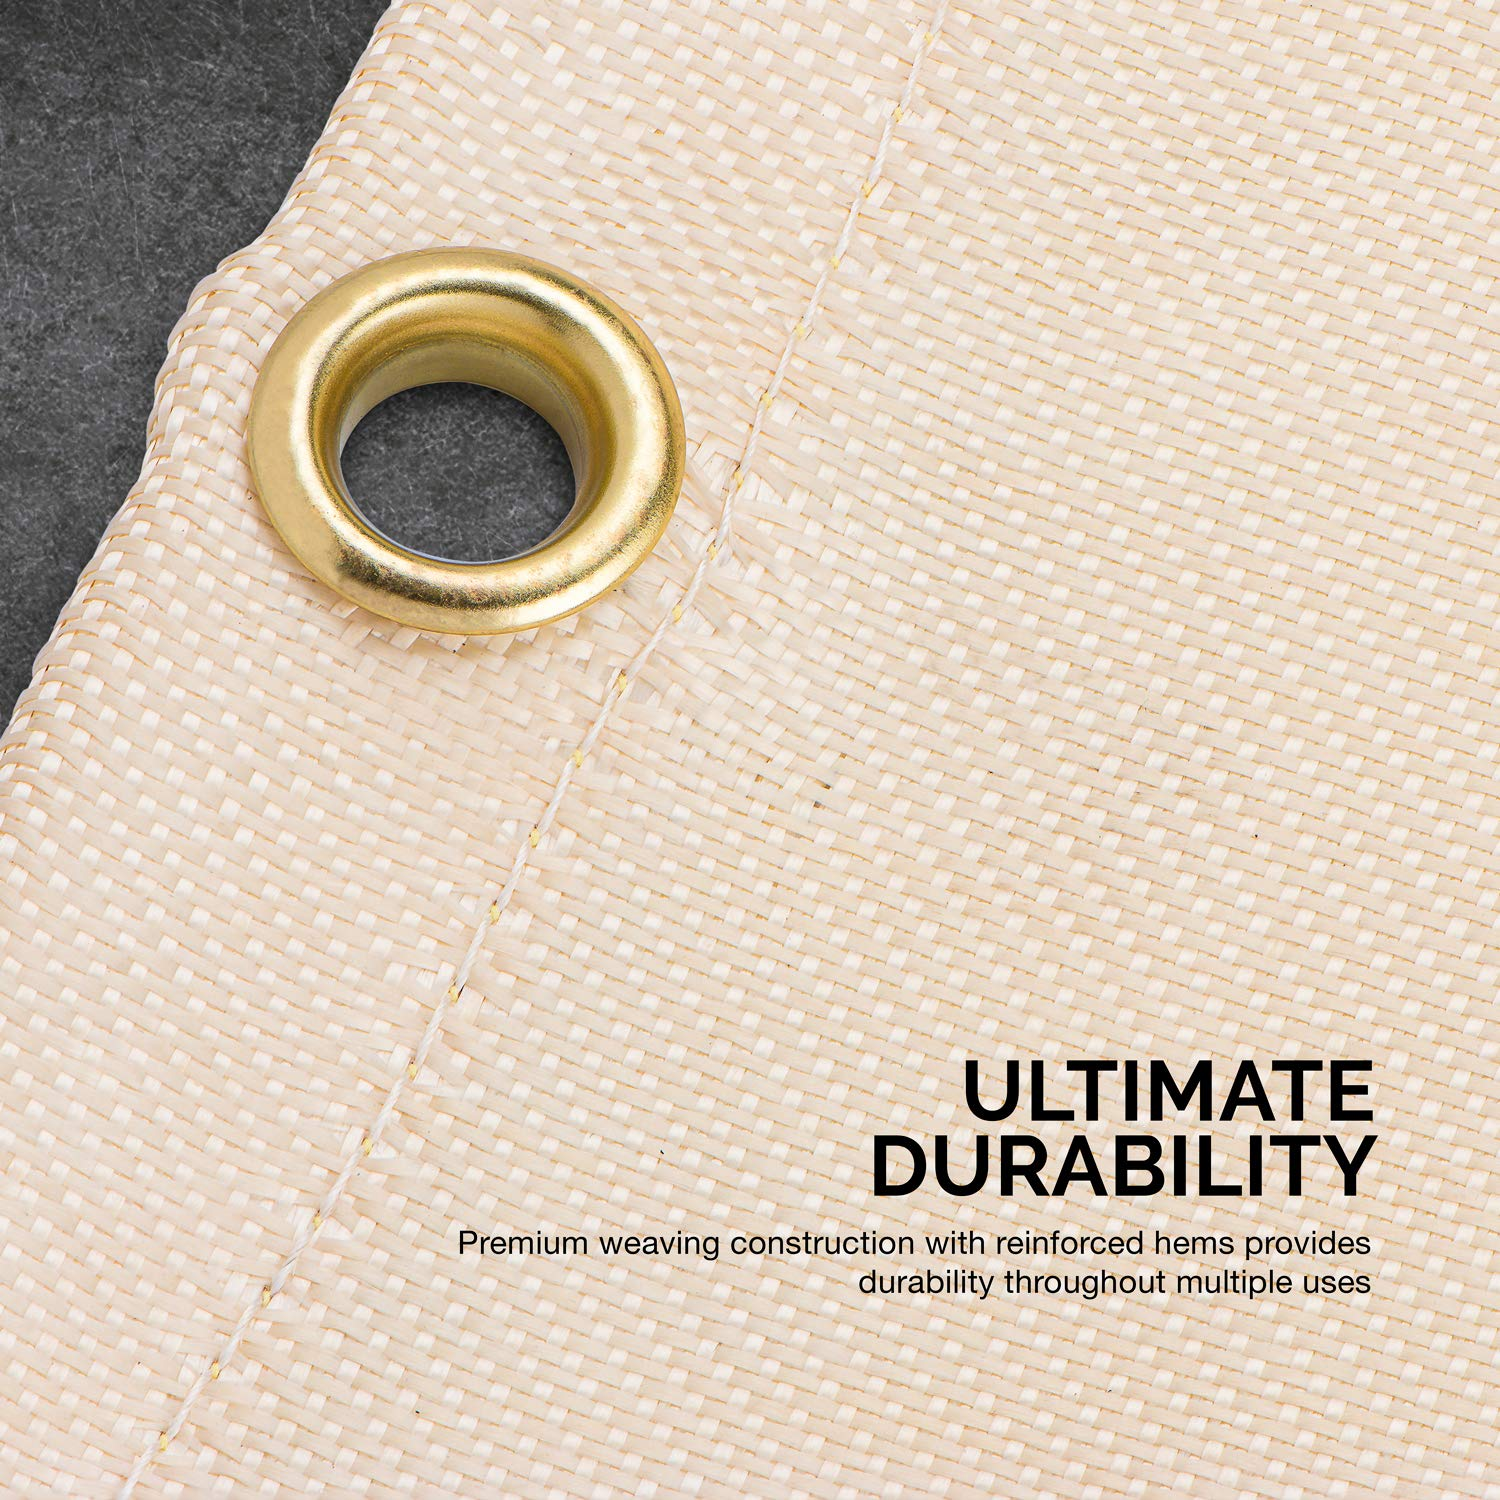 Neiko 10909A Fiberglass Welding Blanket and Cover, 6' x 8'   Brass Grommets for Easy Hanging and Protection by Neiko (Image #3)